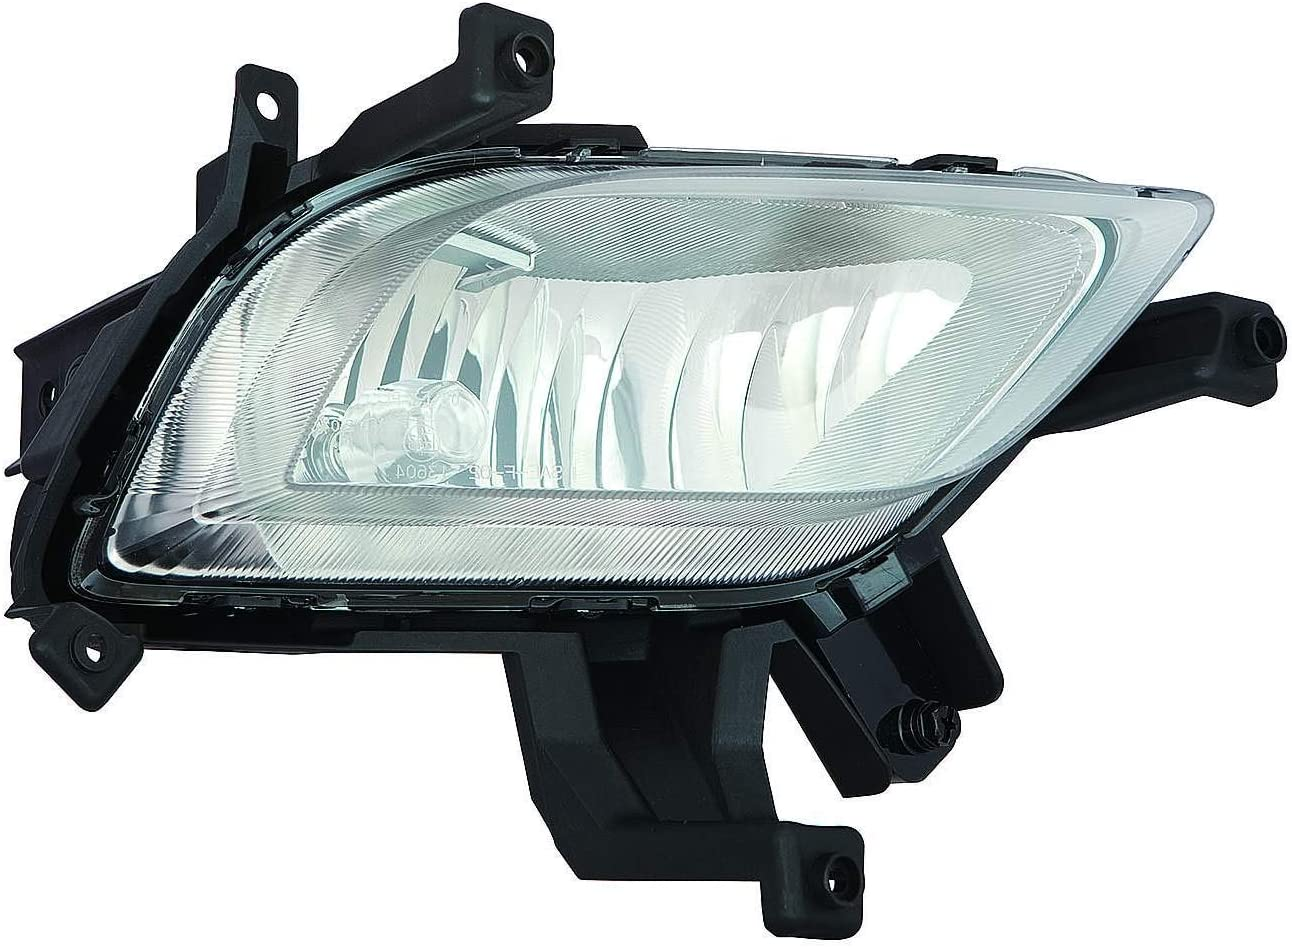 JP Auto Front Fog Light 評判 バーゲンセール Lamp Sedan For Forte With Compatible Kia